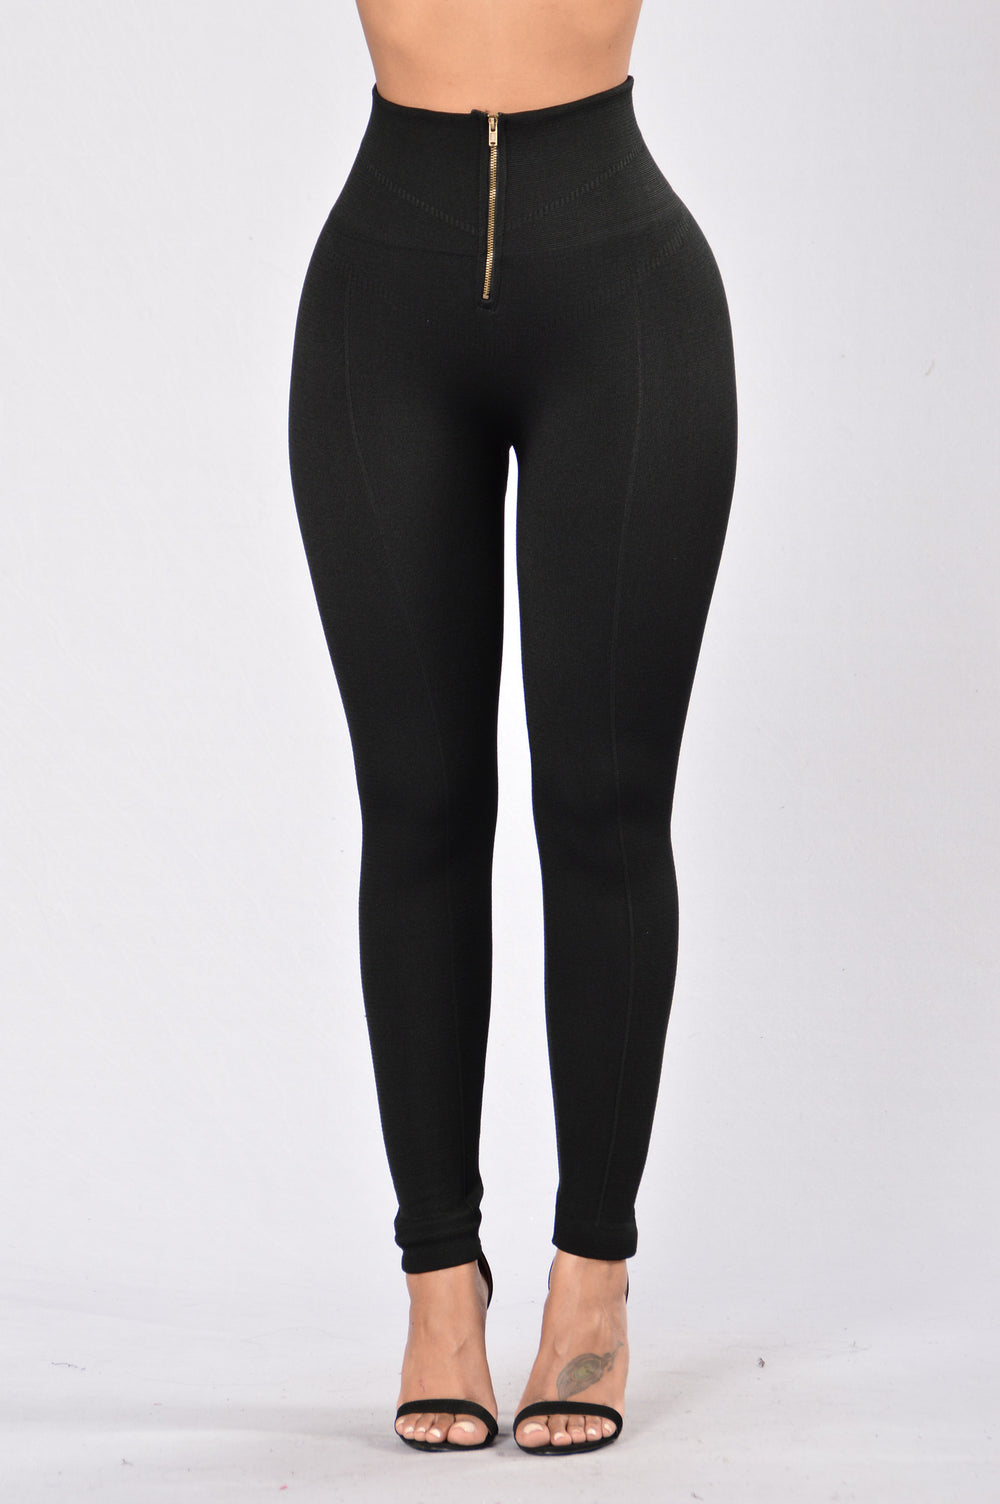 Zipper Fleece Leggings - Black